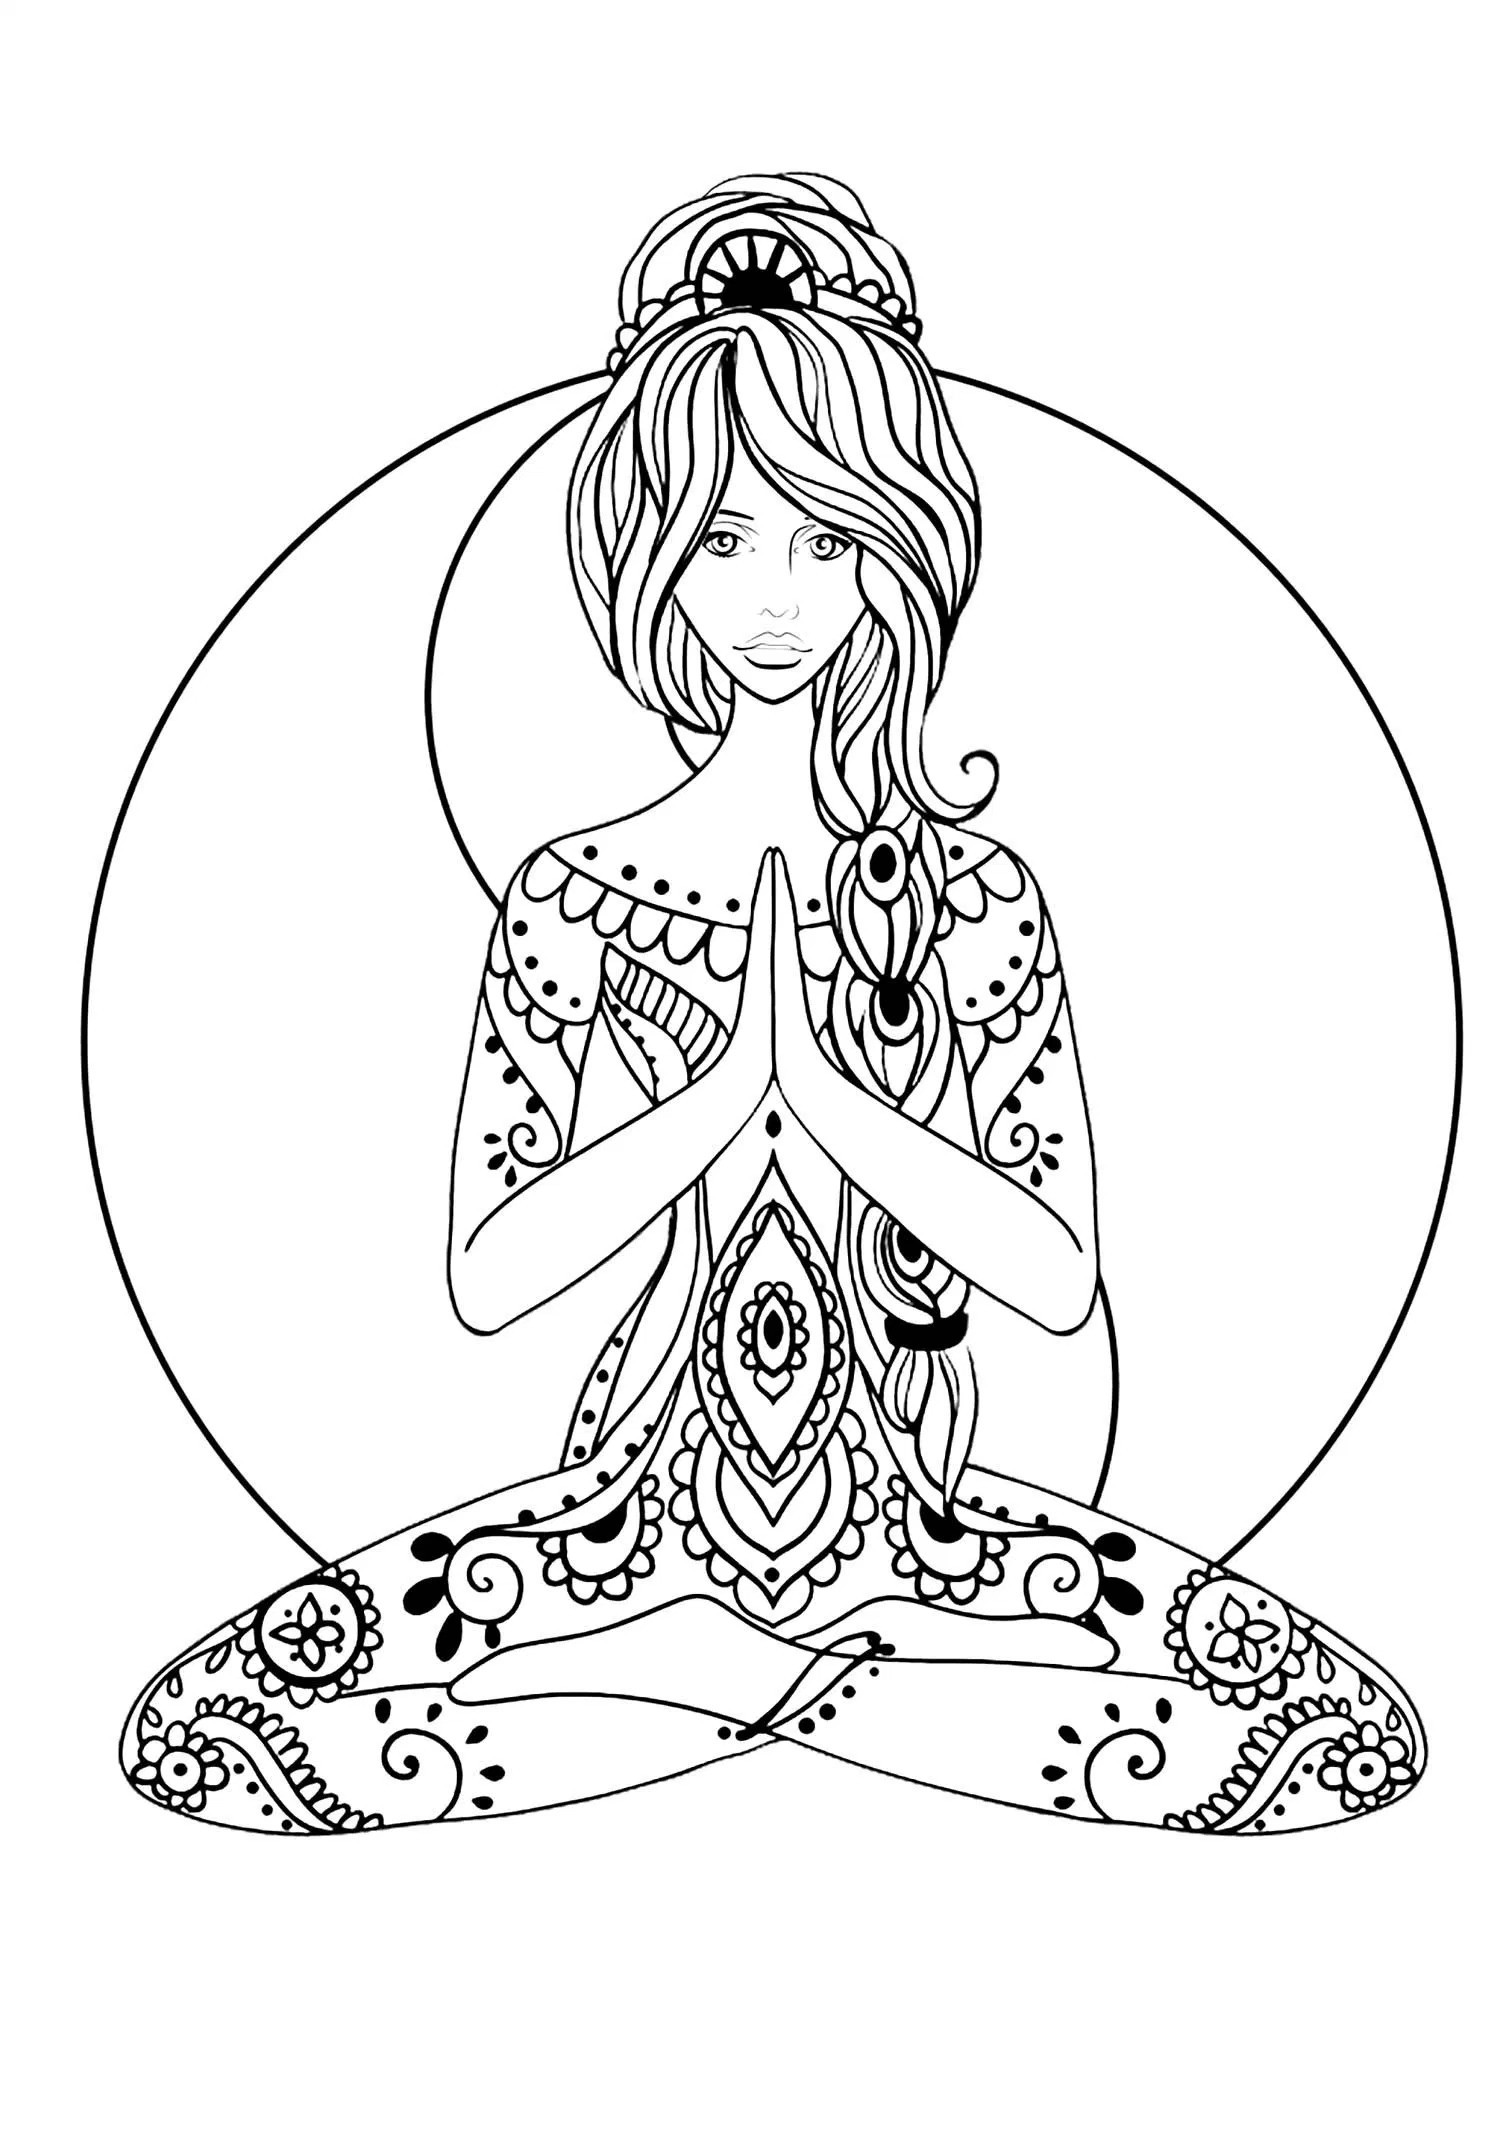 1500x2137 Yoga Coloring Pages To Print Copy Fresh Kids This Is A Free